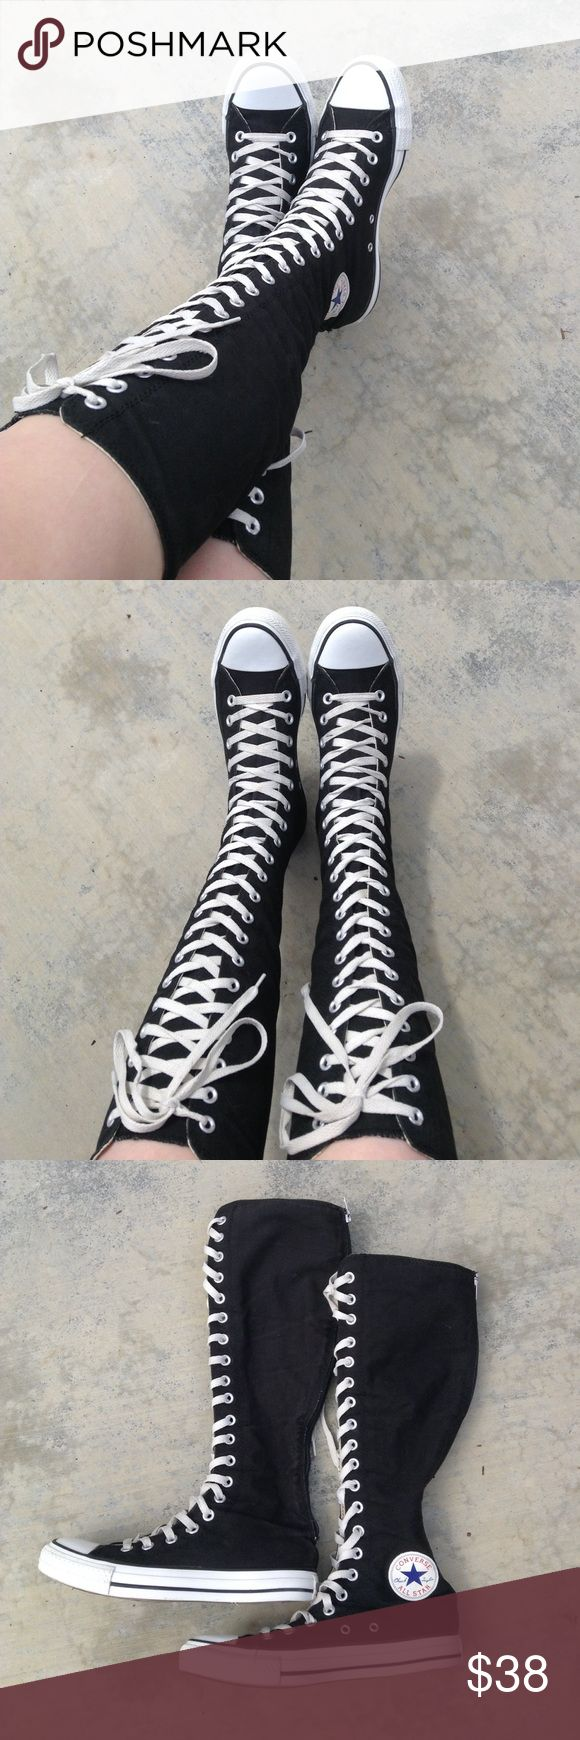 Black & White Tall Converse High-Tops Boots Very cute, absolutely amazing, and in great condition! Soles aren't worn down, and the laces don't have any stains on them, just a tad darker since they're not brand new. Flaws: tiny yellow dot on front of the right shoe, and some dirty spots as seen in the last picture. Not noticeable. Offers are welcome! Converse Shoes Lace Up Boots